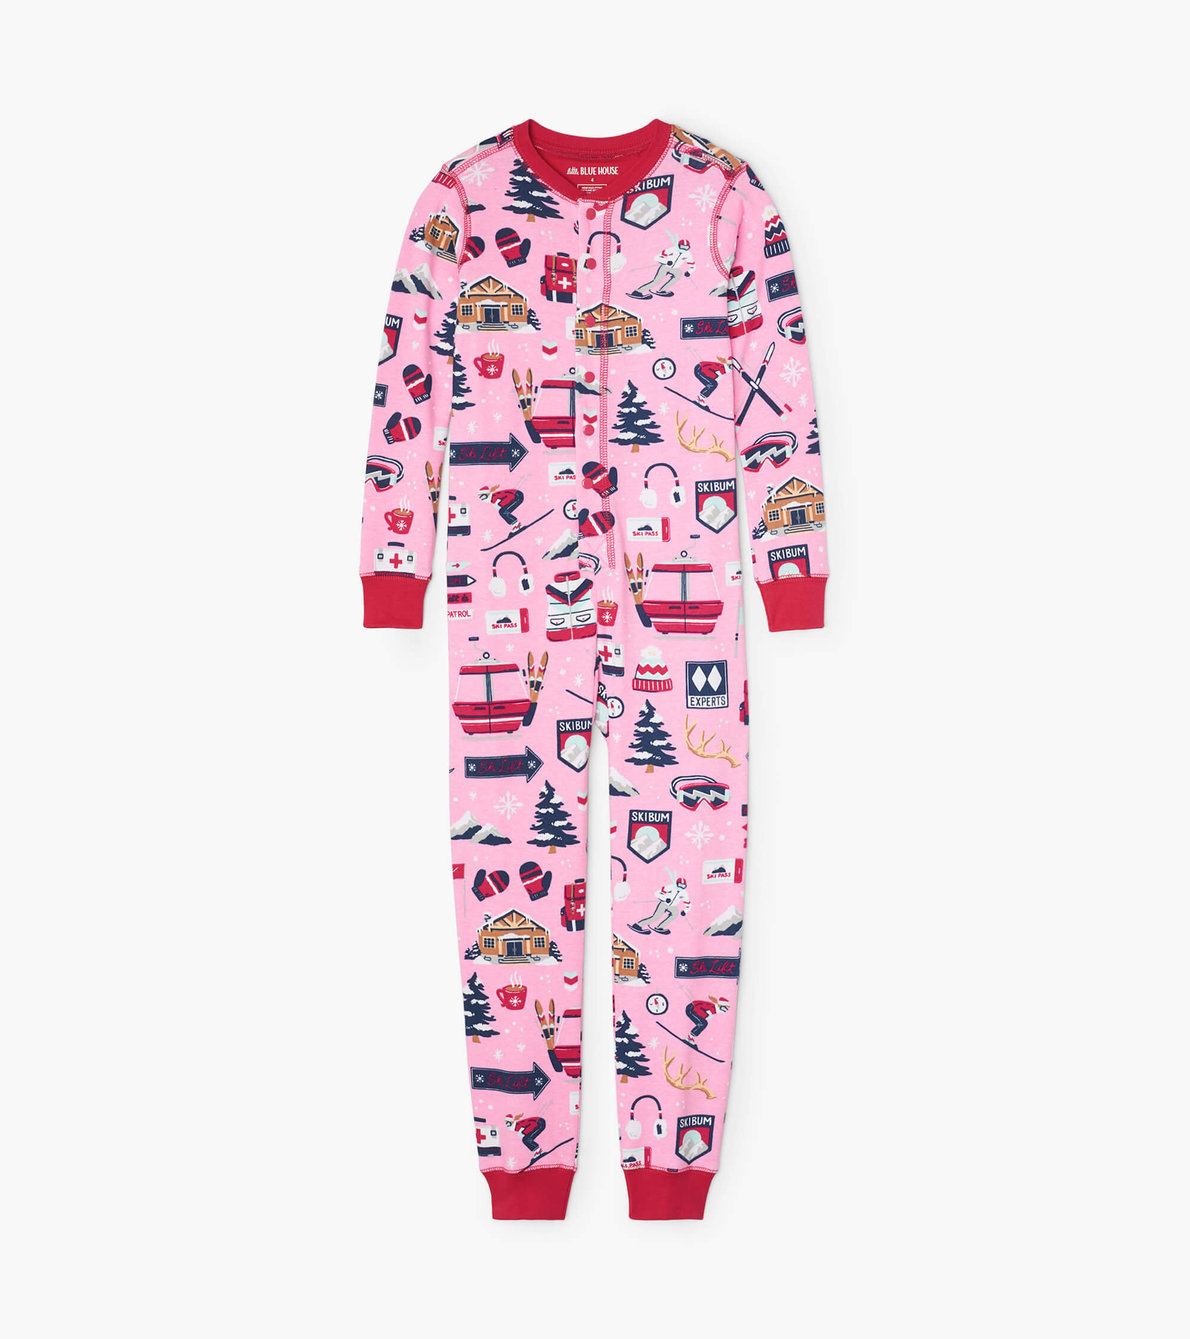 View larger image of Pink Ski Holiday Kids Union Suit